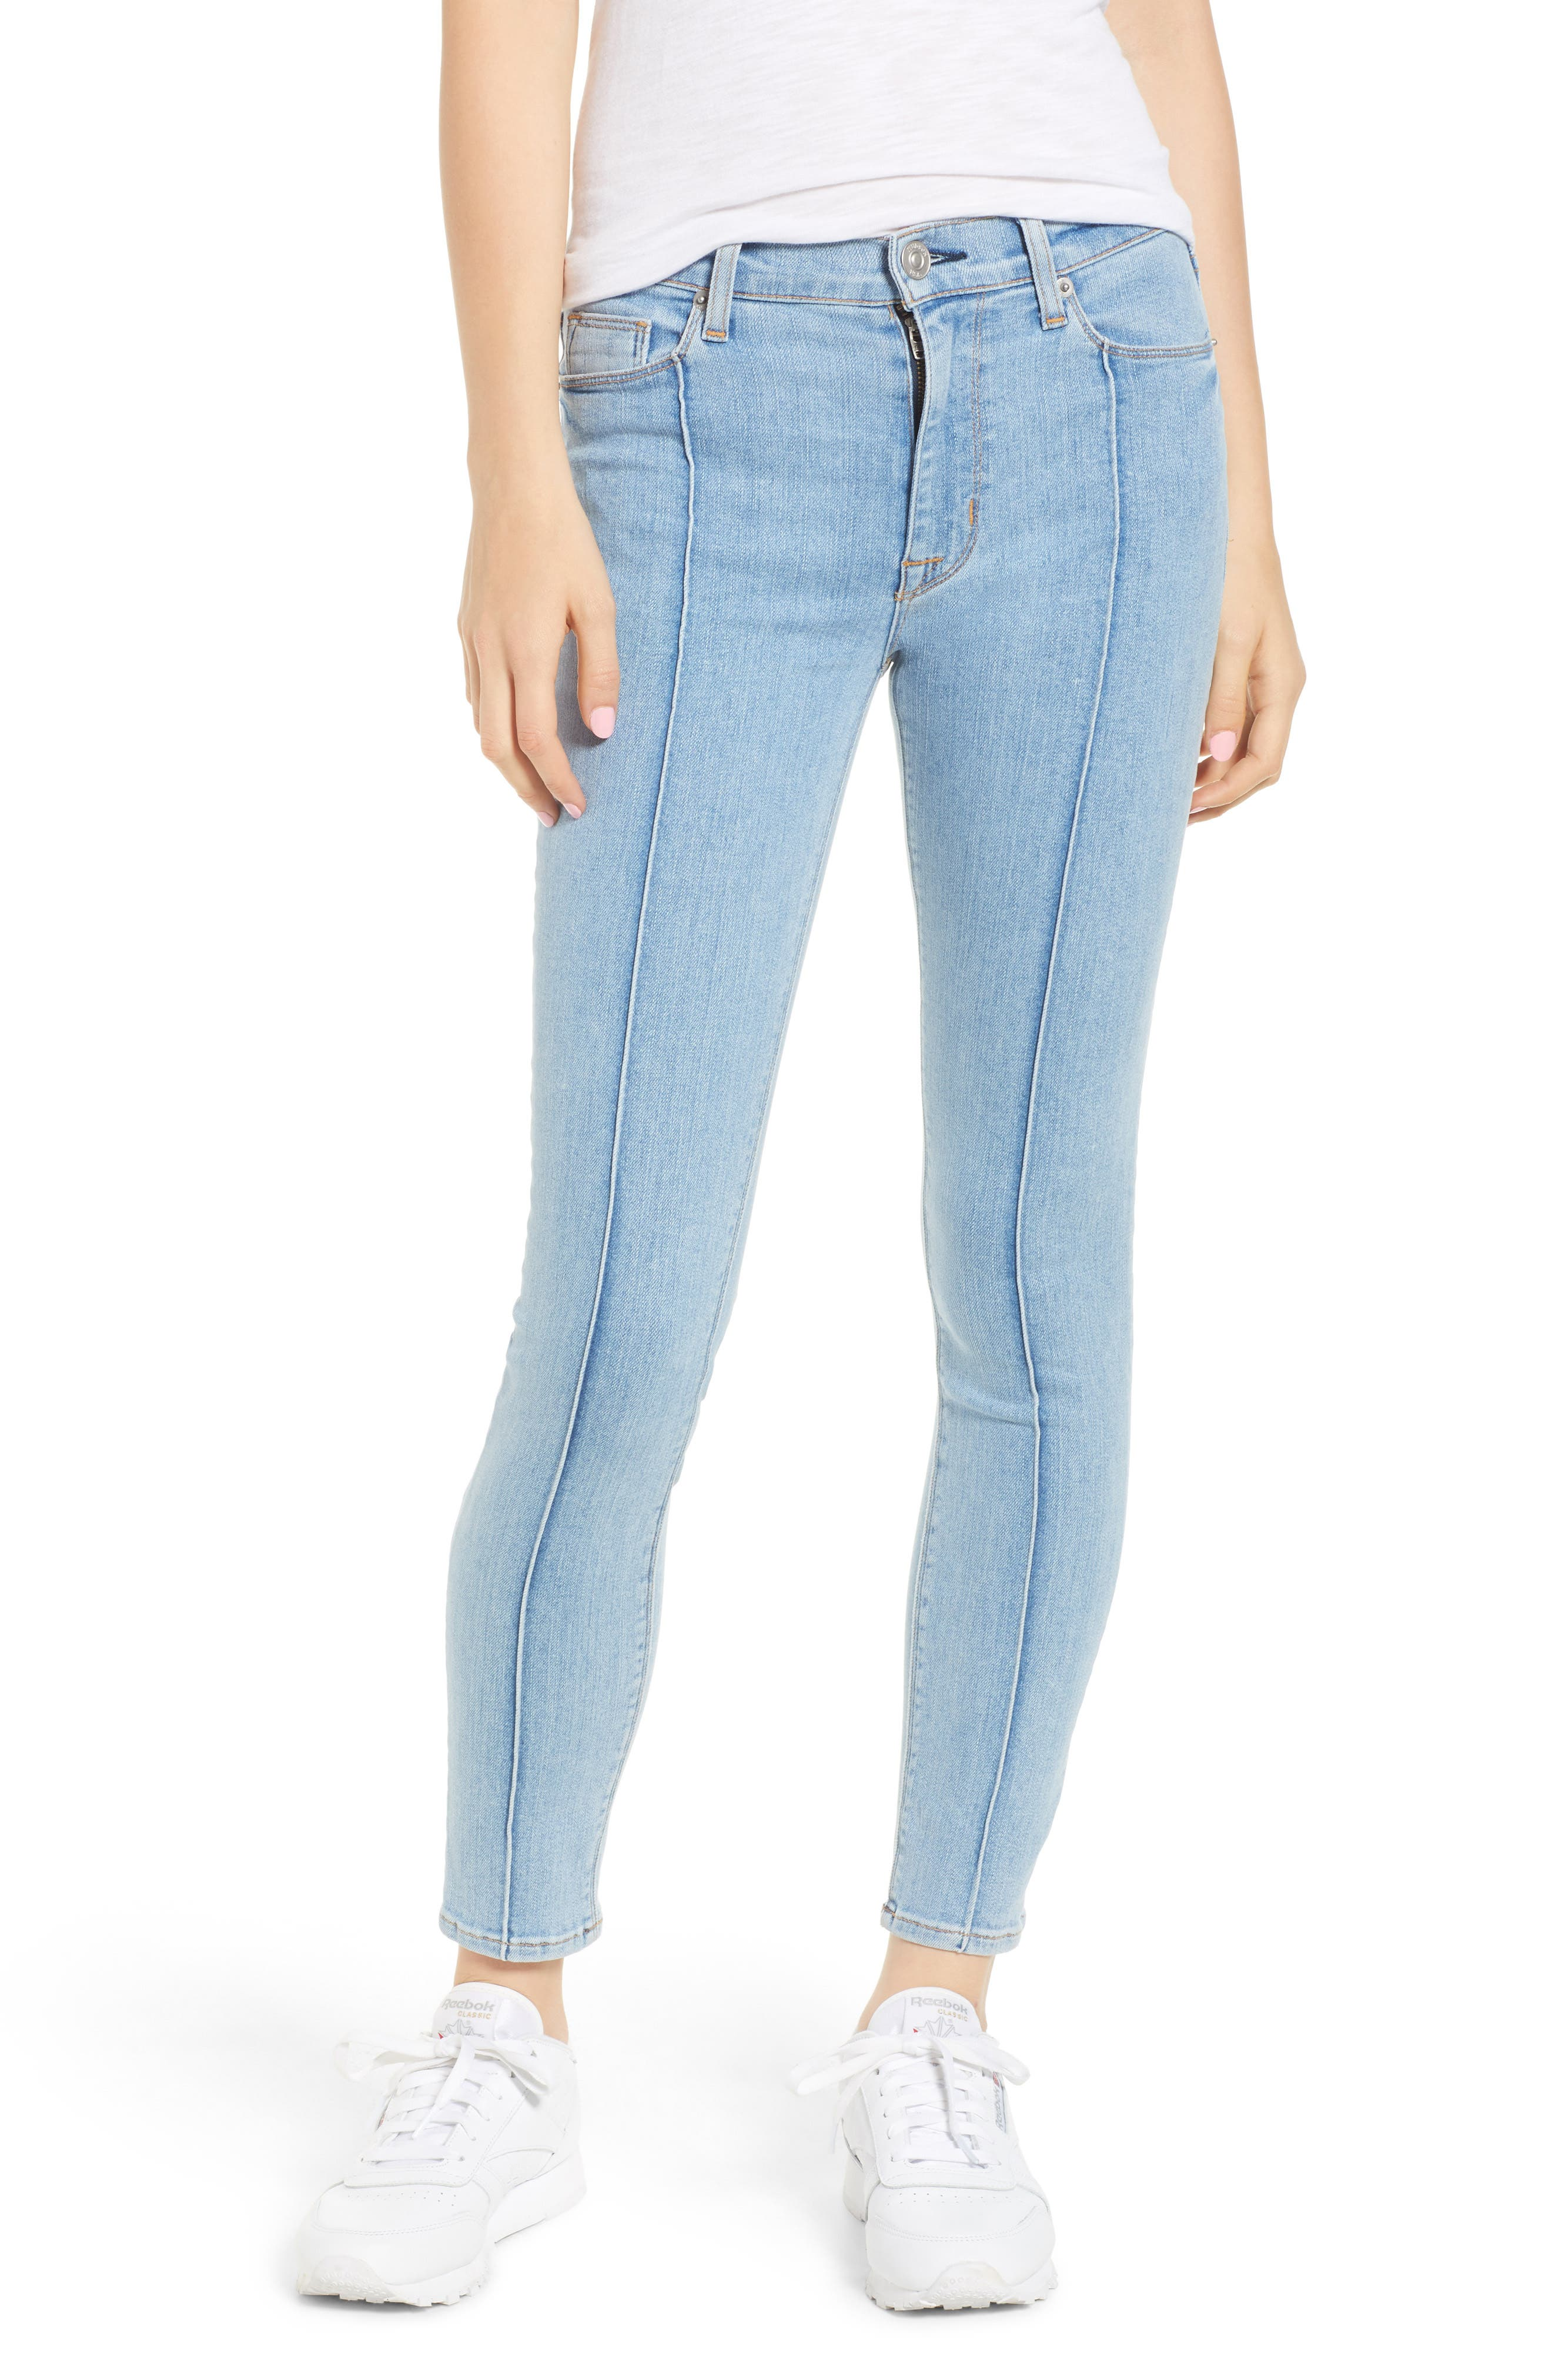 Barbara High Waist Super Skinny Jeans,                         Main,                         color, 450